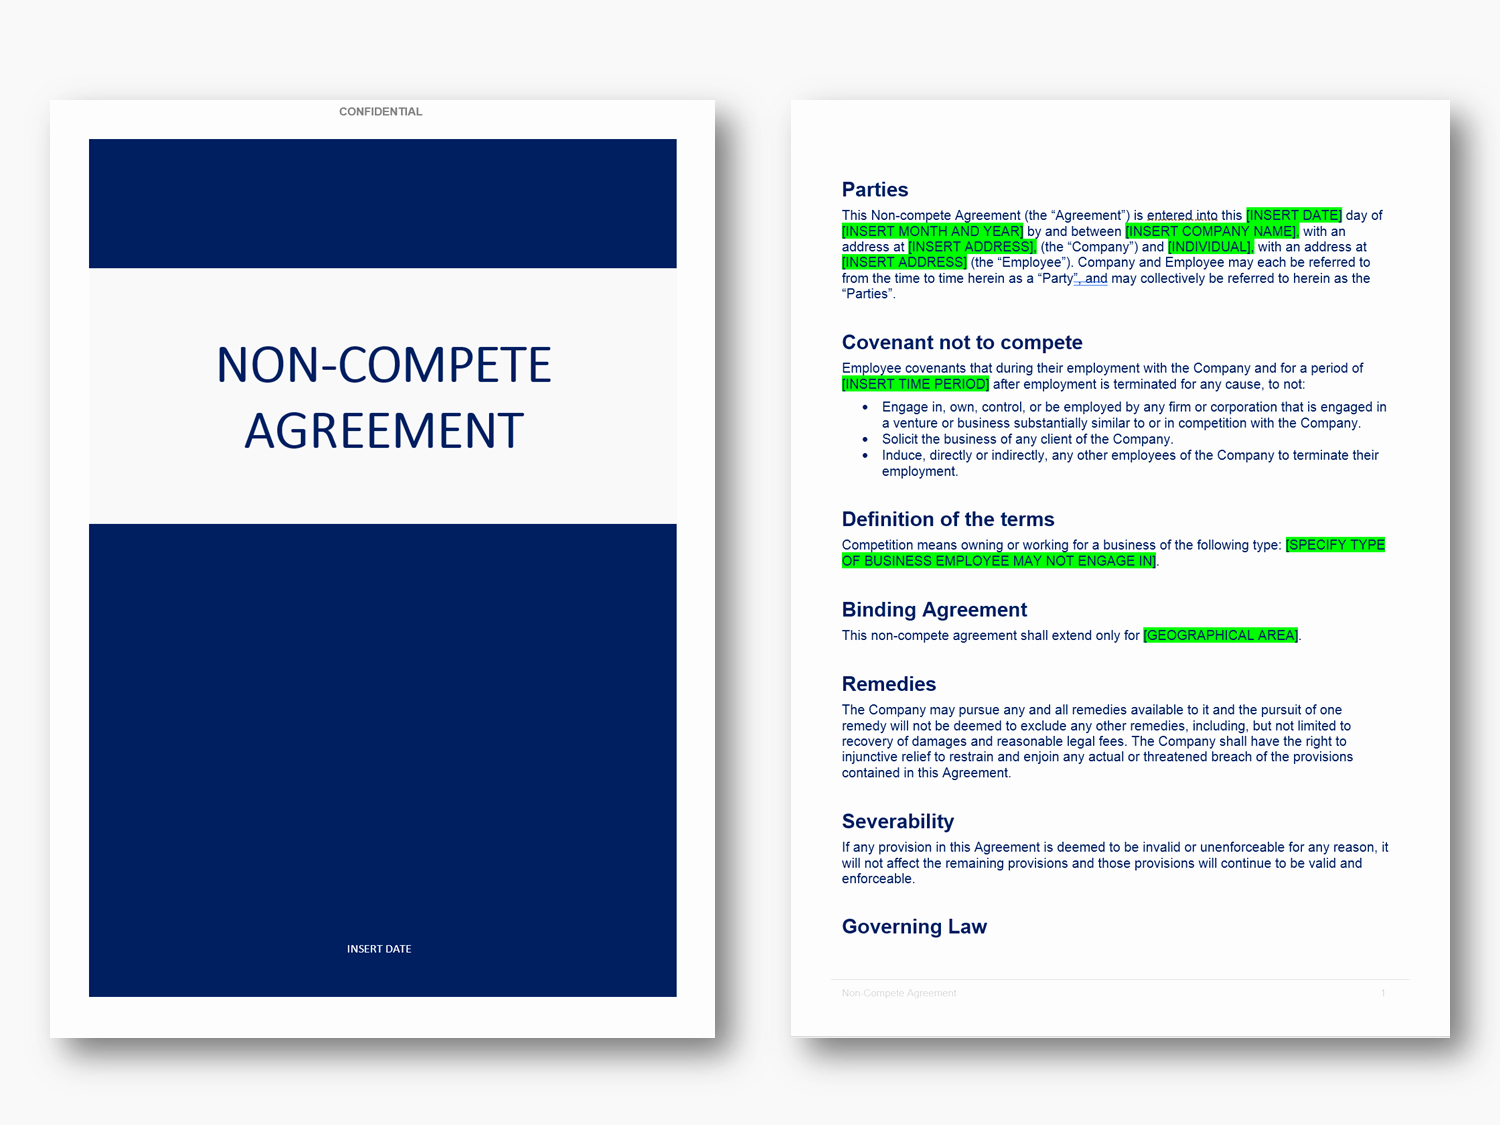 Non Compete Agreement Template Word Fresh Non Pete Agreement Template In Word